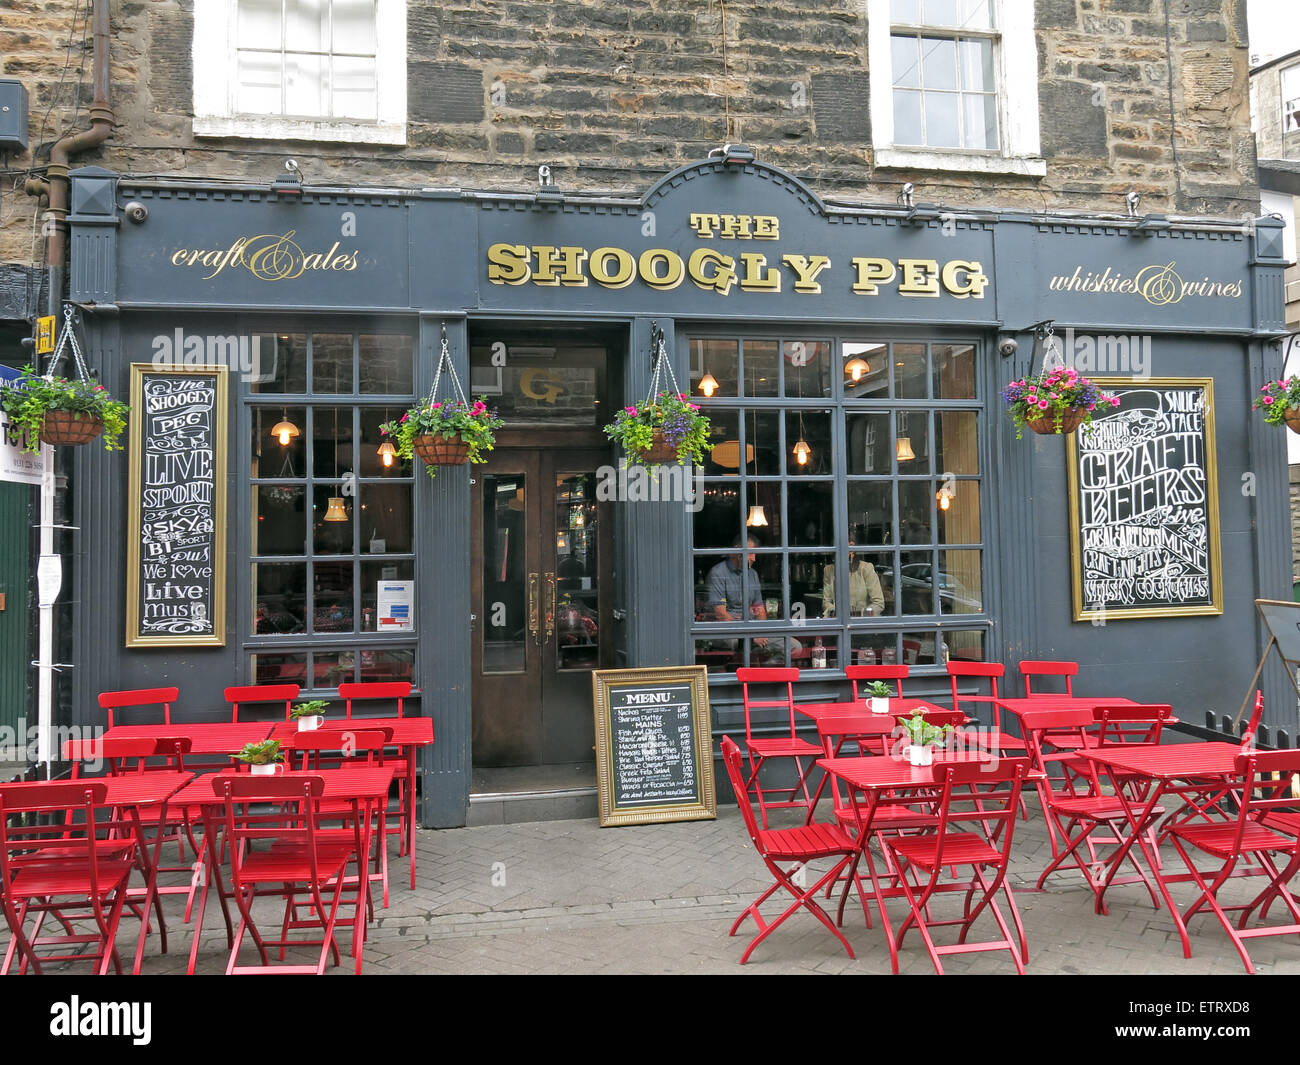 The Shoogly Peg pub, Rose St,Edinburgh,Scotland,UK - Stock Image